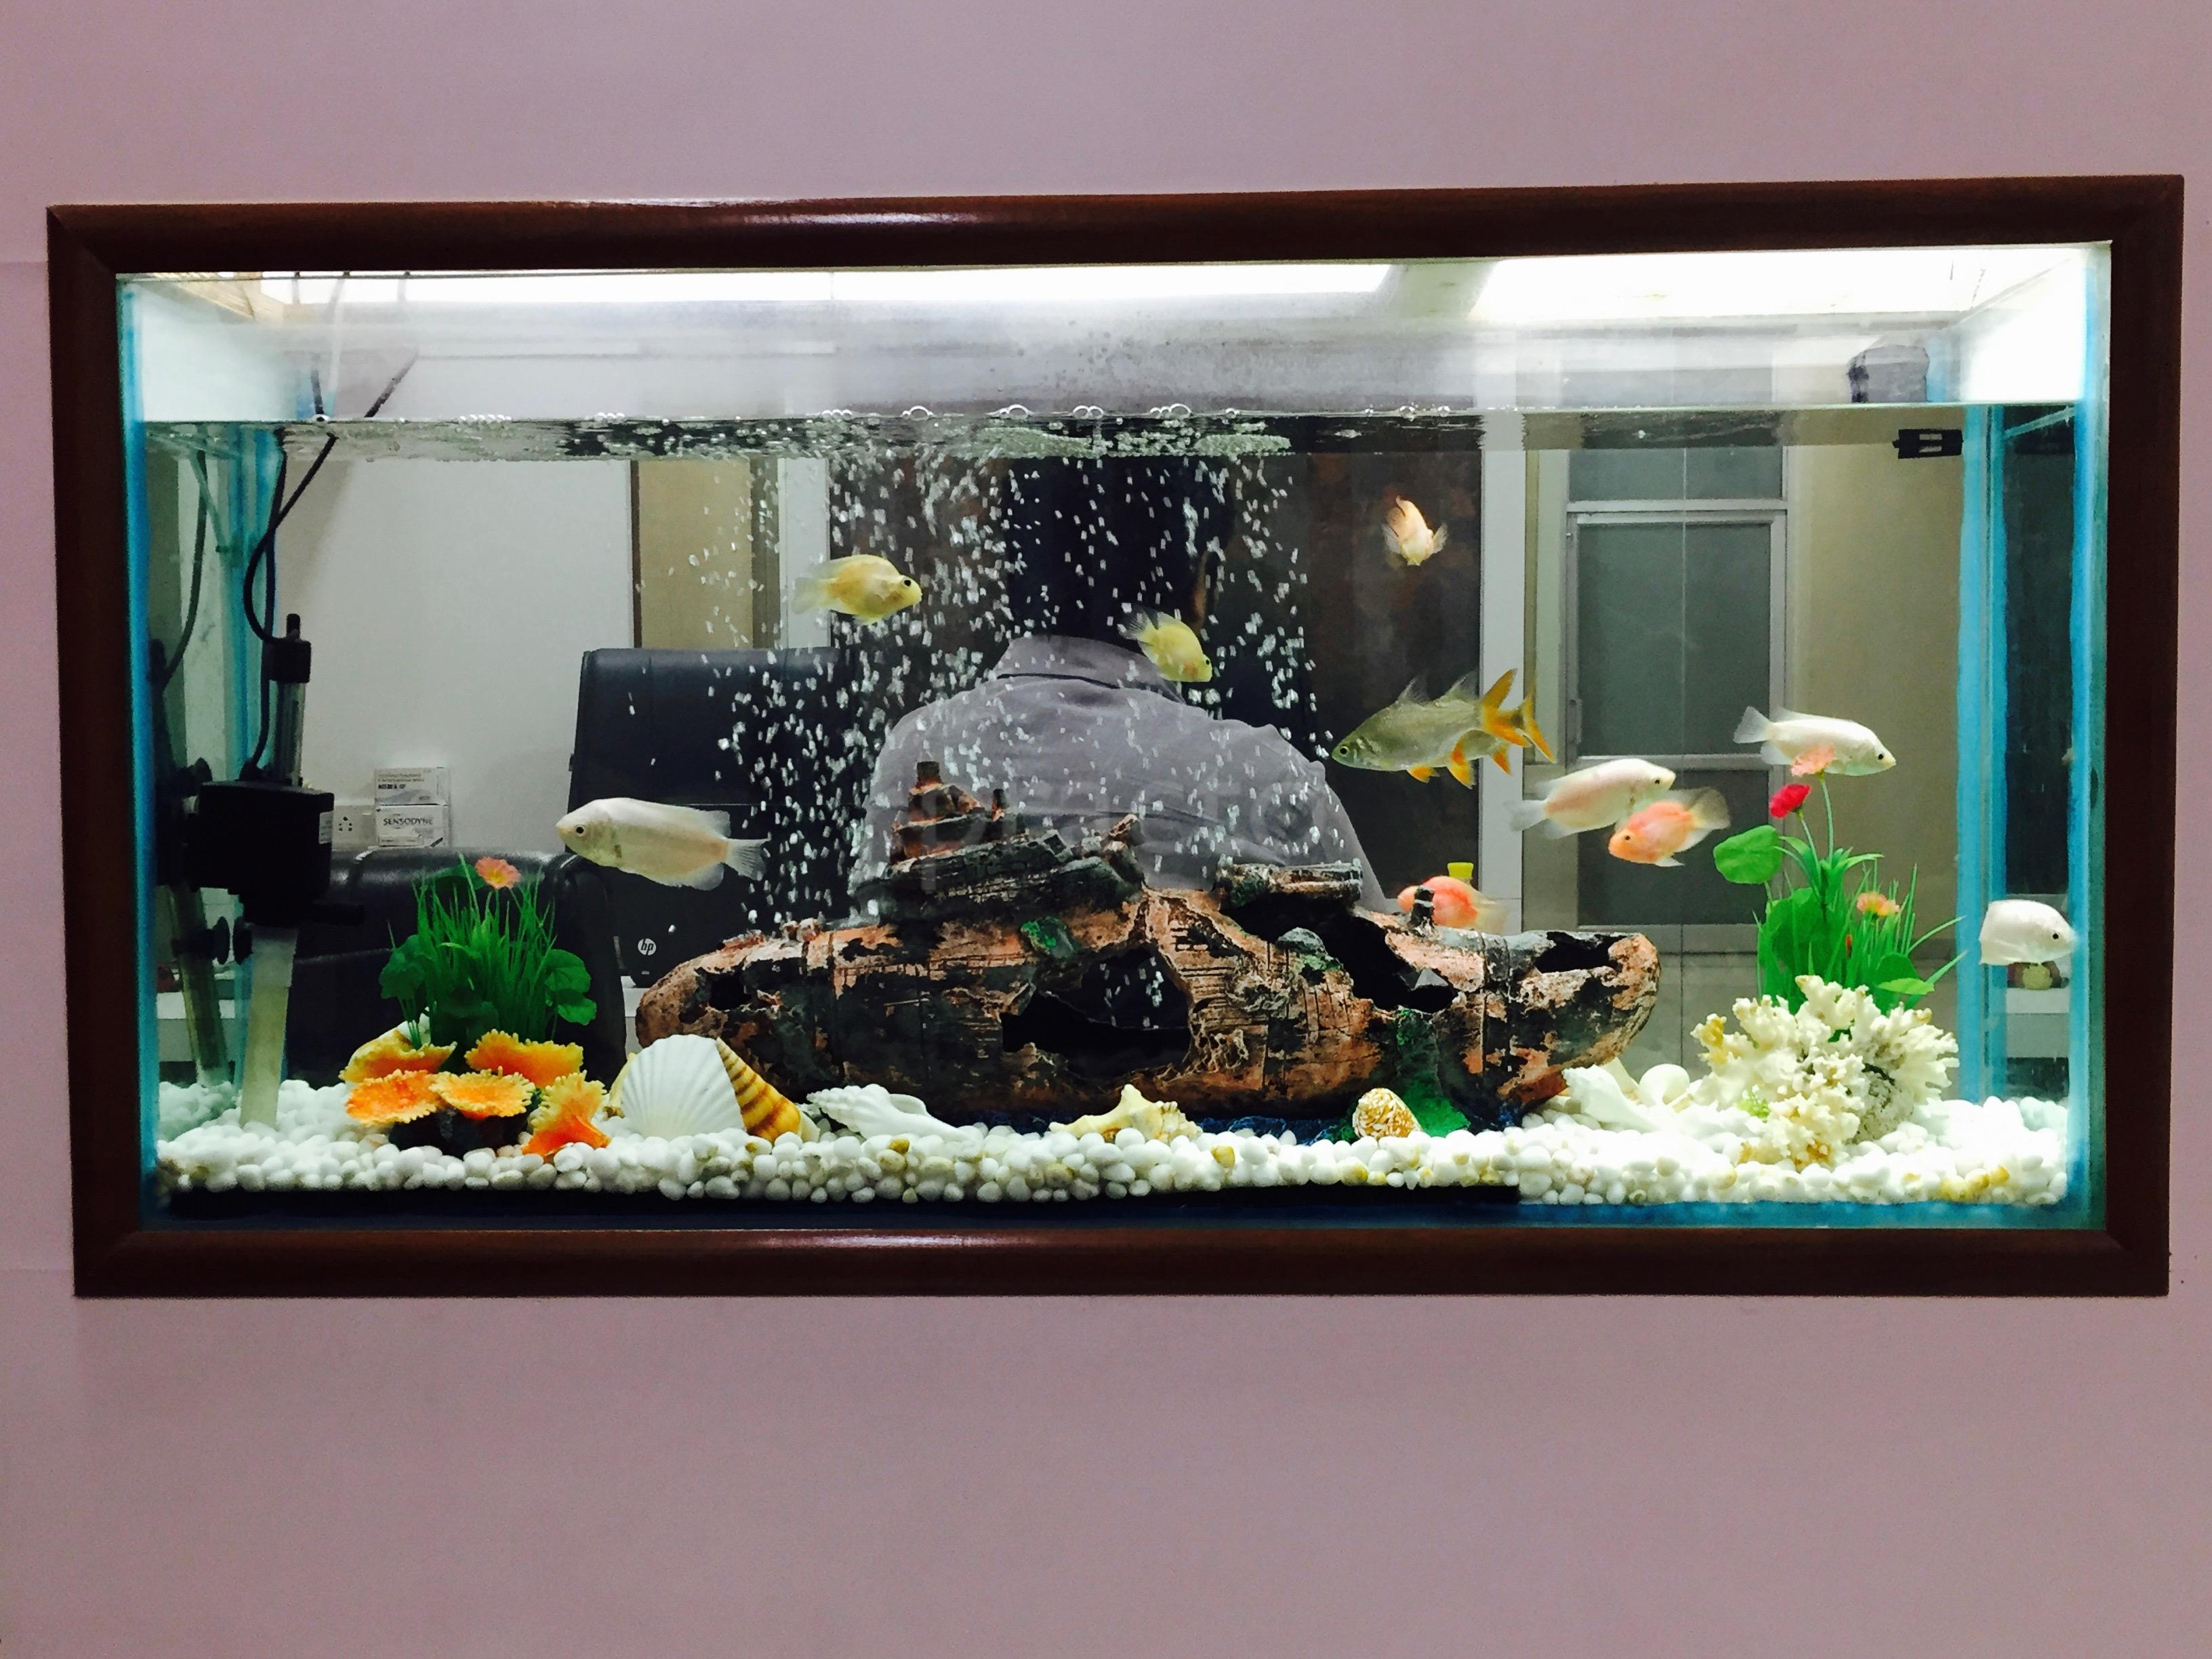 Fish aquarium in vadodara - Dr Manu Bansal Book Appointment Online View Fees Feedbacks Practo